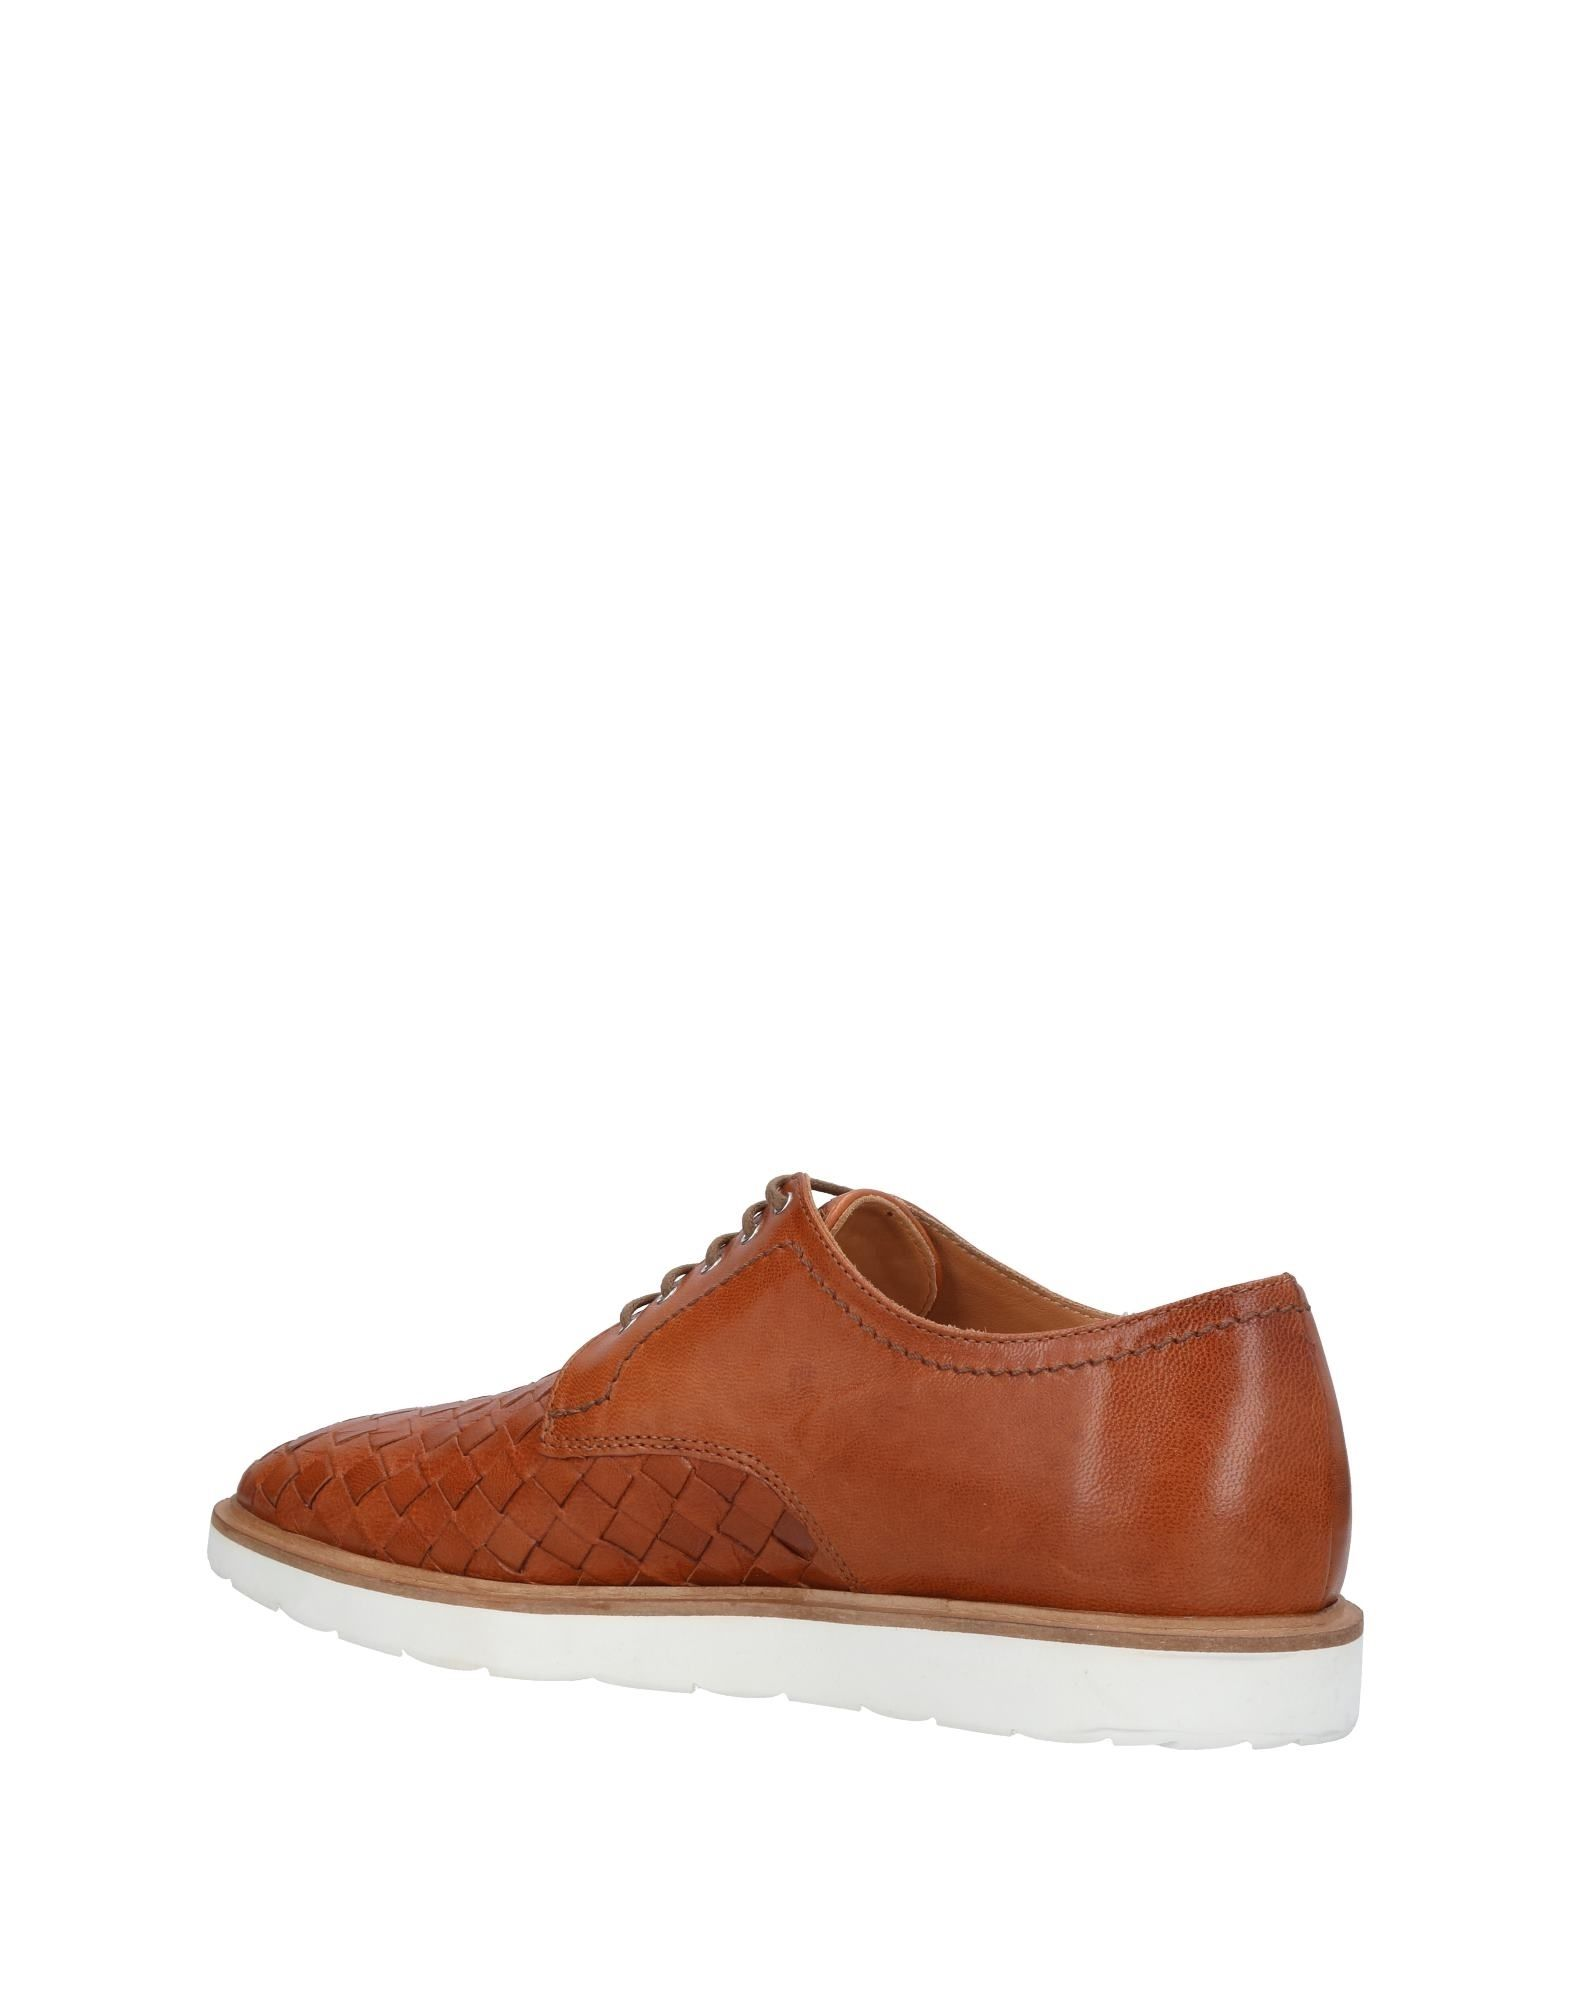 CHAUSSURES - TongsCarla Saint Barth gip1ab